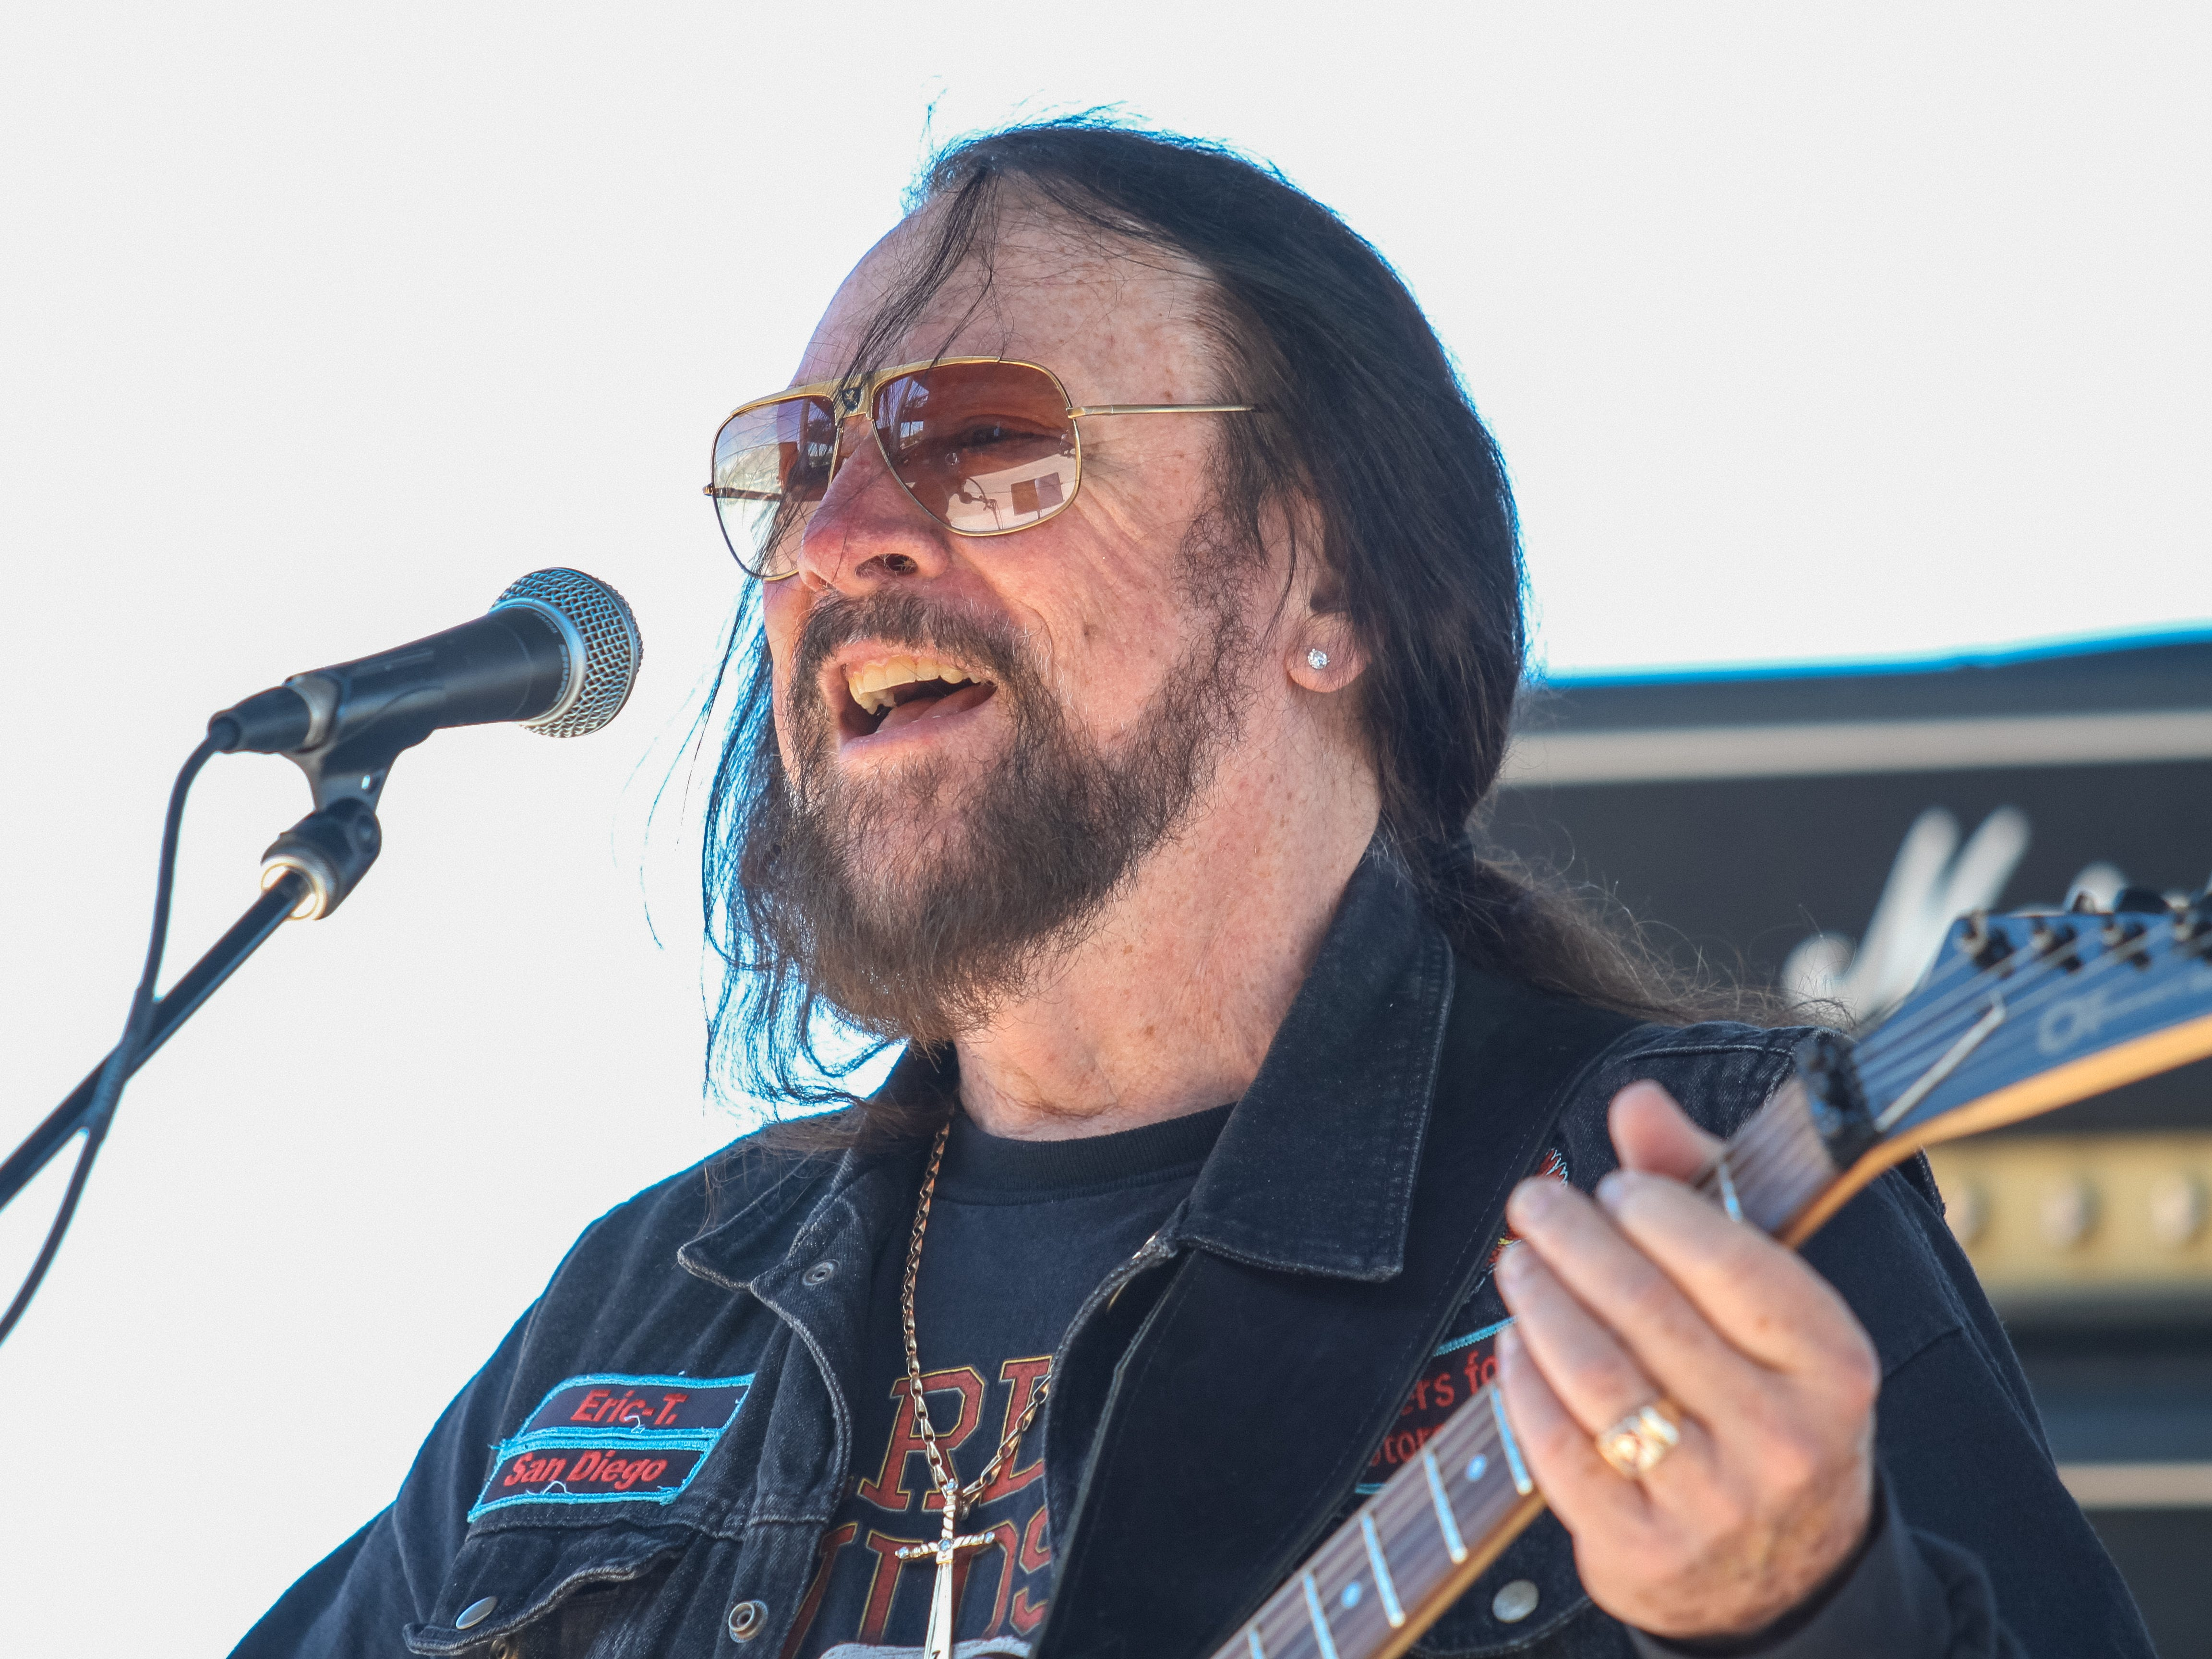 Eric Turner of the Full Throttle Band out of Southern California plays at the Harley Davidson of Scottsdale in Scottsdale on April 6, 2019.